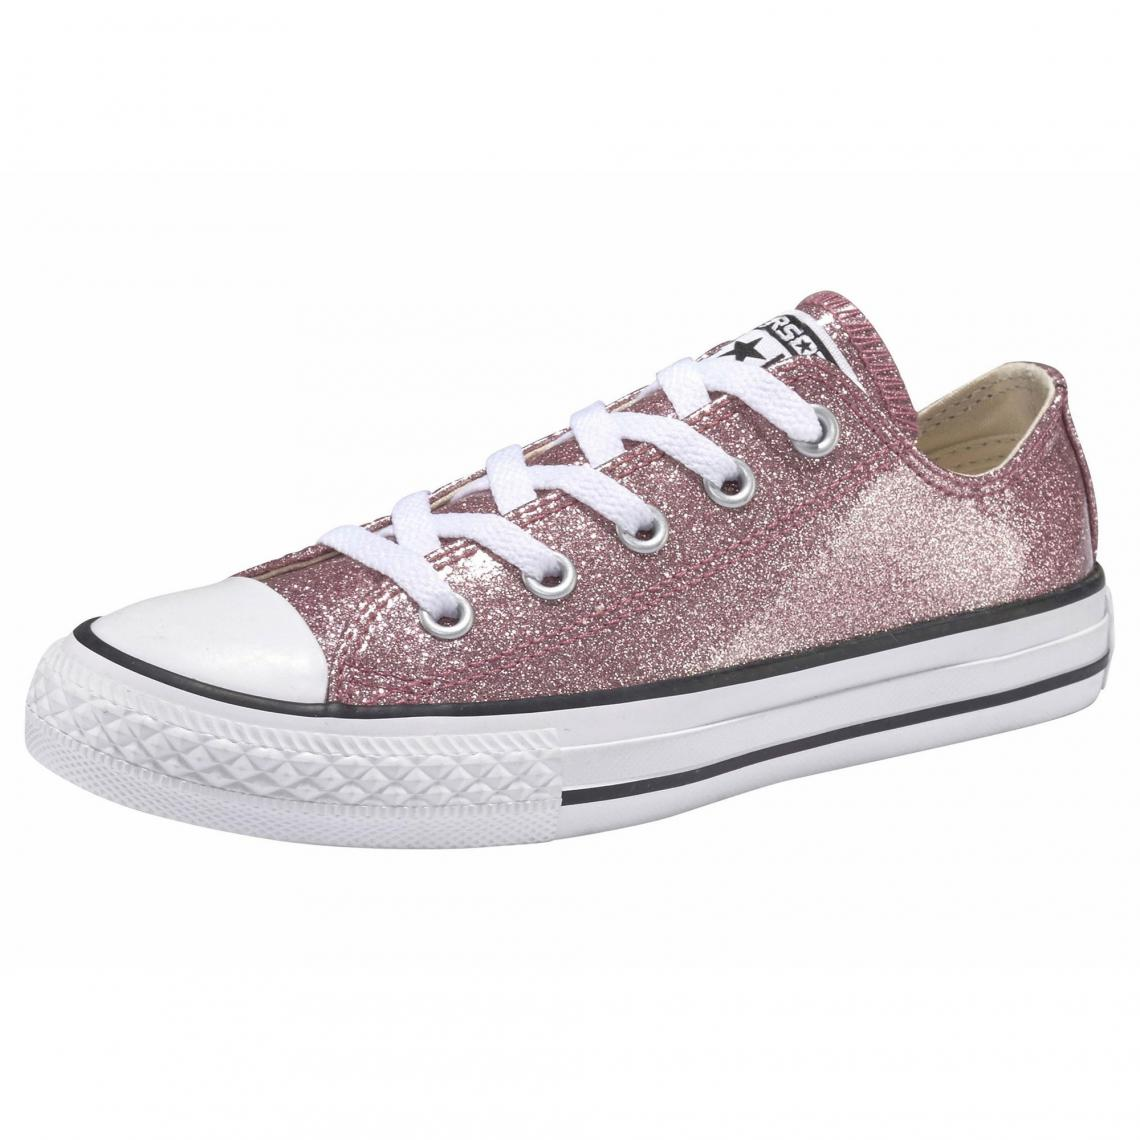 Baskets en toile effet scintillant fille Chuck Taylor All Star Ox Converse Rose